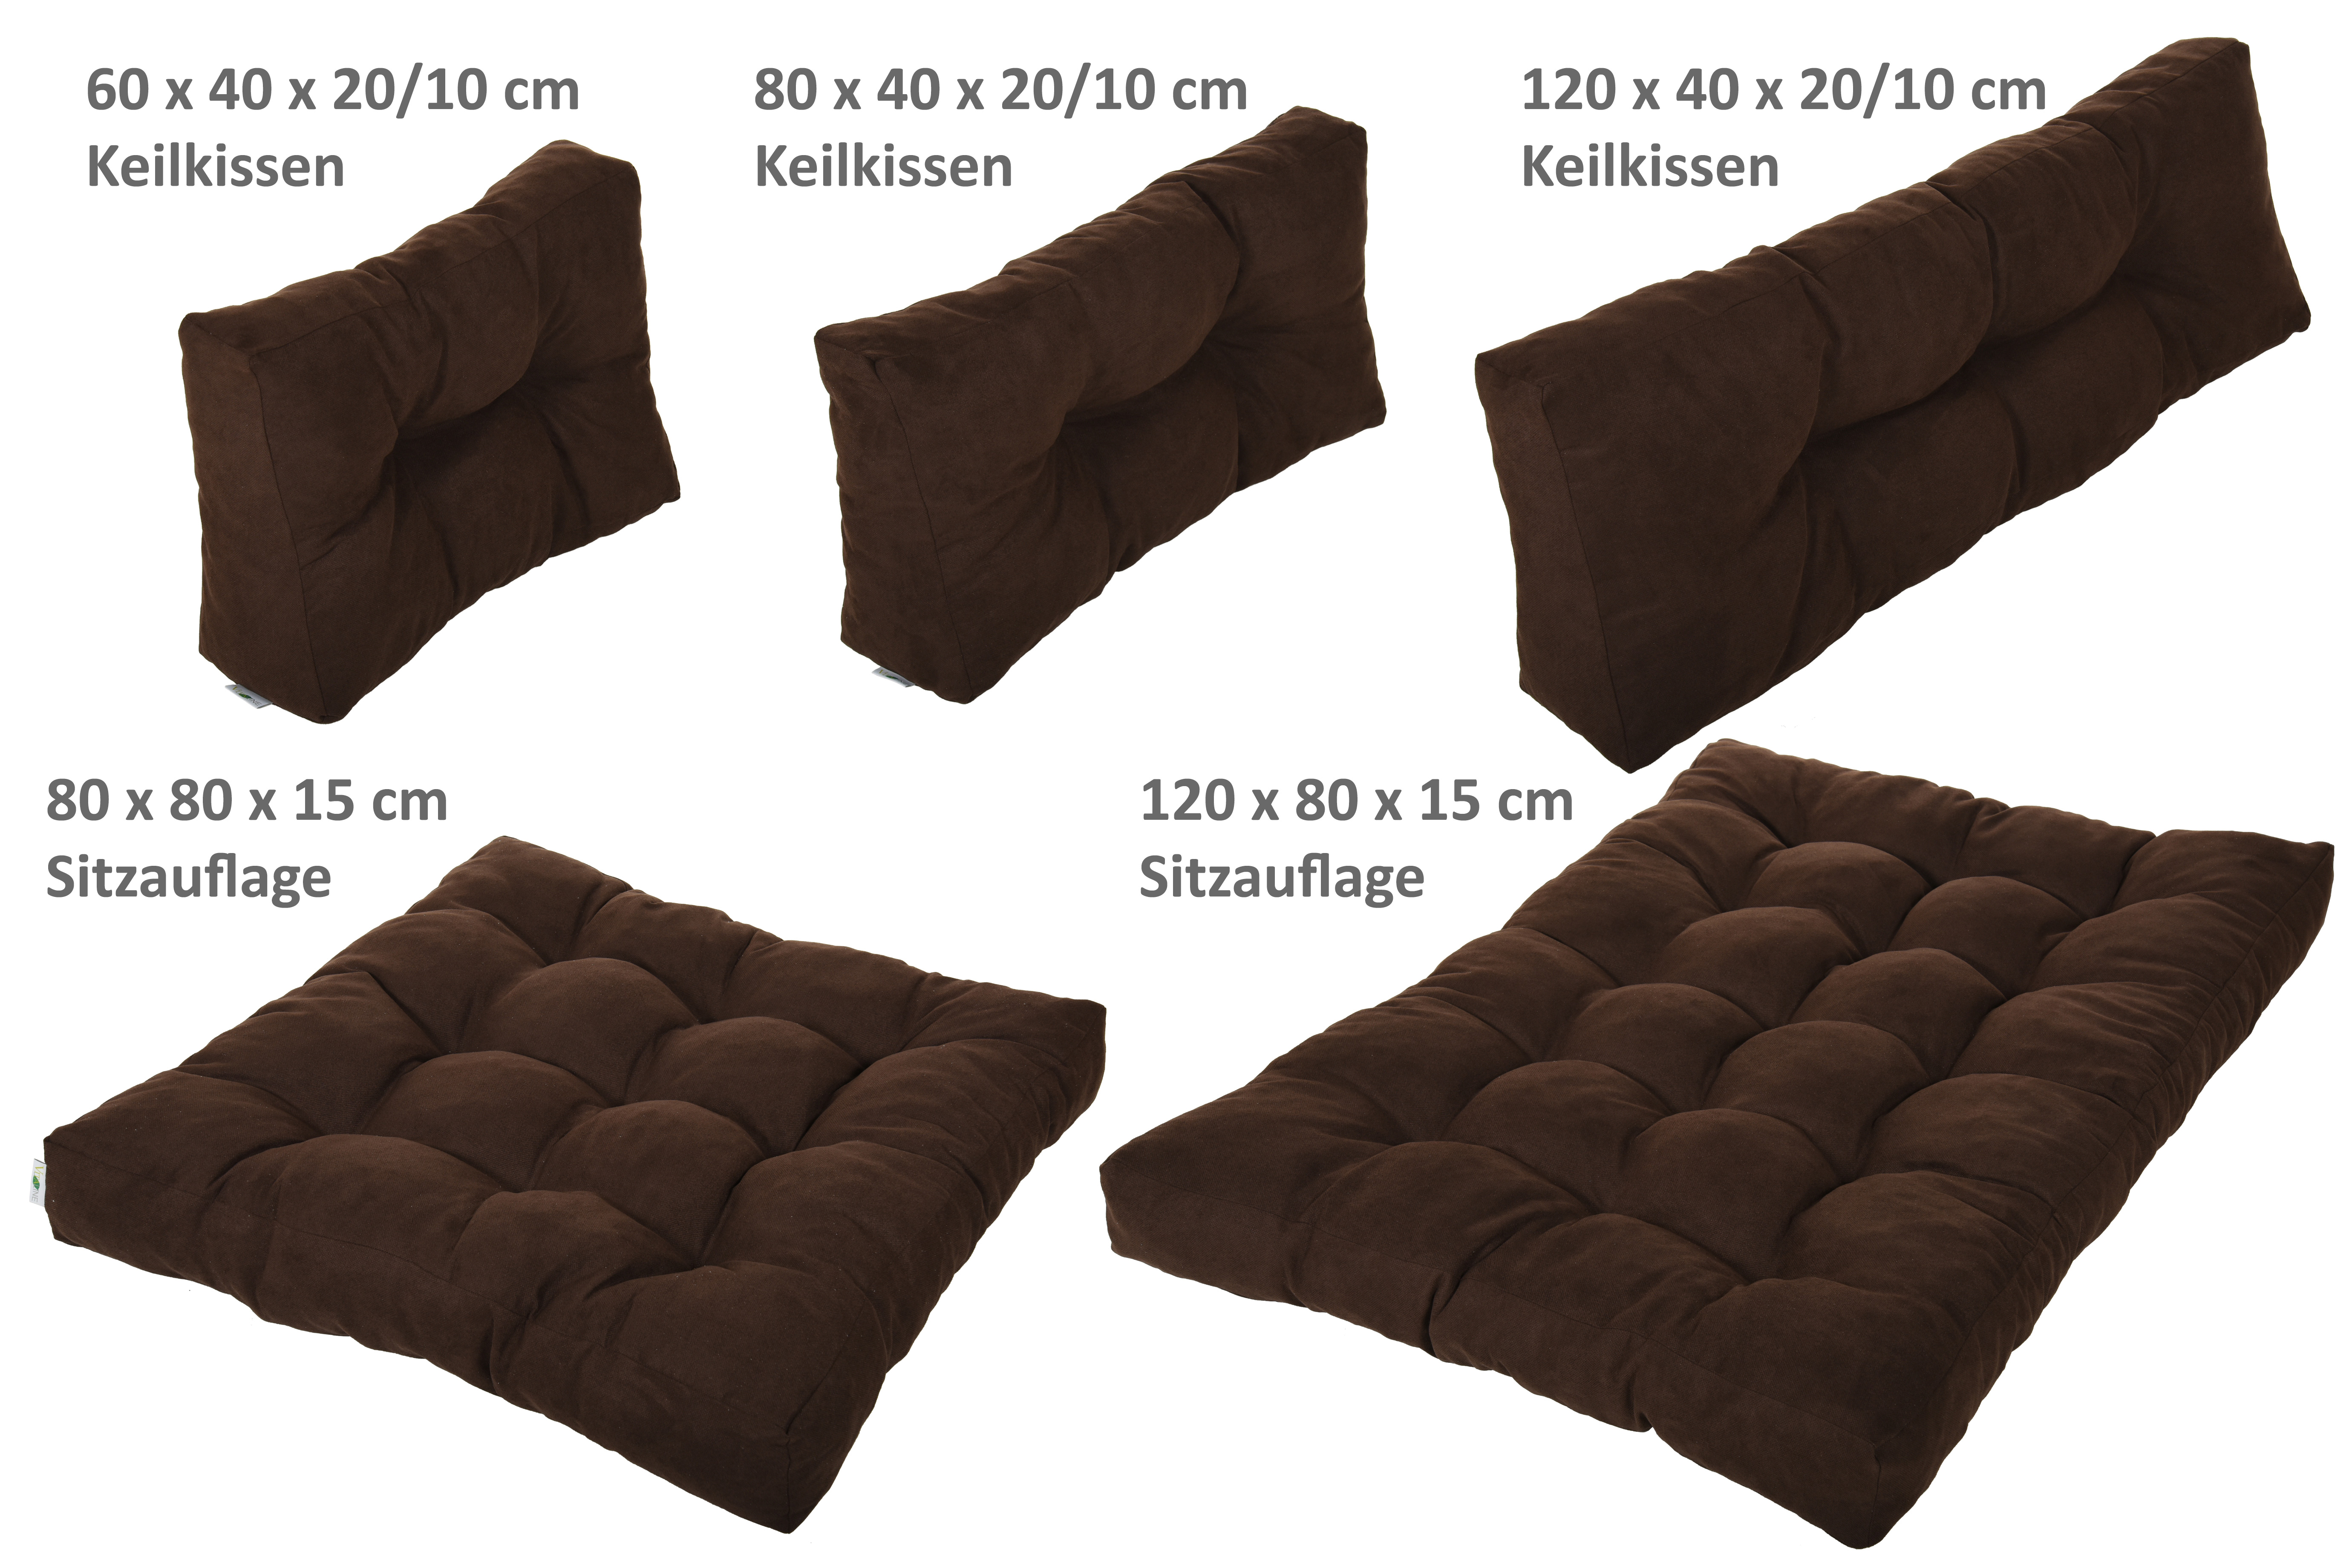 palettenkissen palettenpolster palettensofa polster auflage kissen sofa hc serie ebay. Black Bedroom Furniture Sets. Home Design Ideas